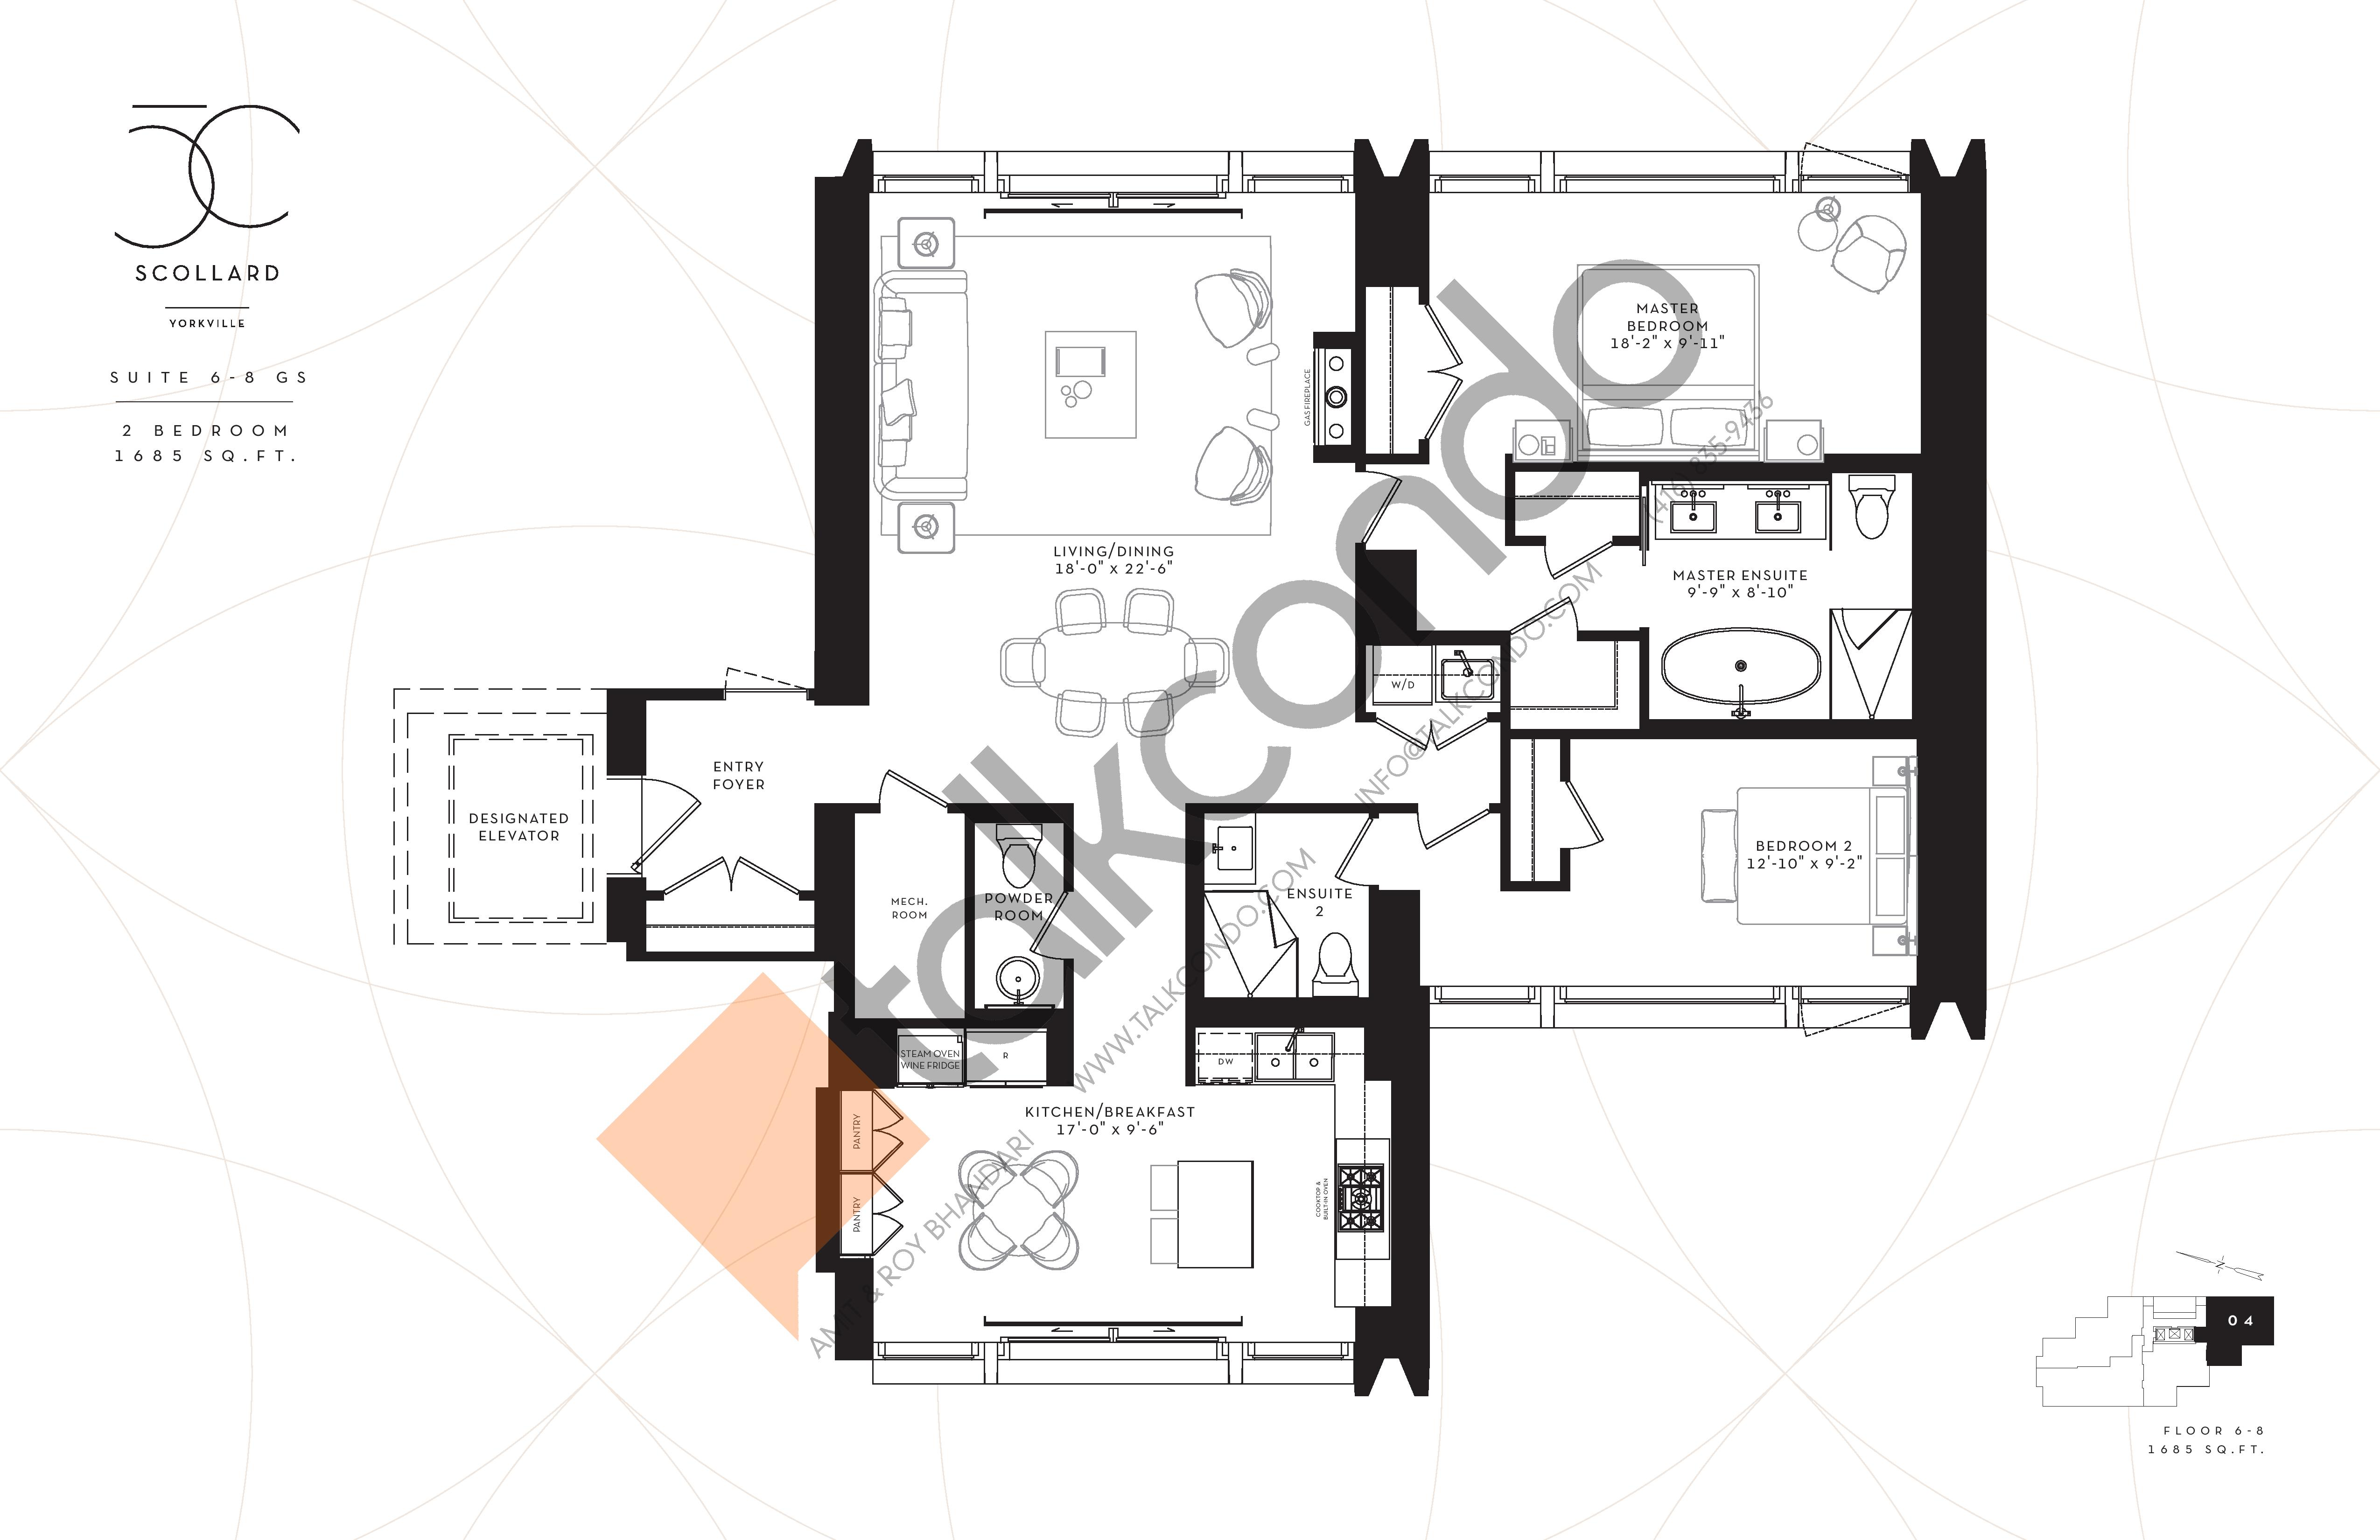 Suite 6-8GS Floor Plan at Fifty Scollard Condos - 1685 sq.ft